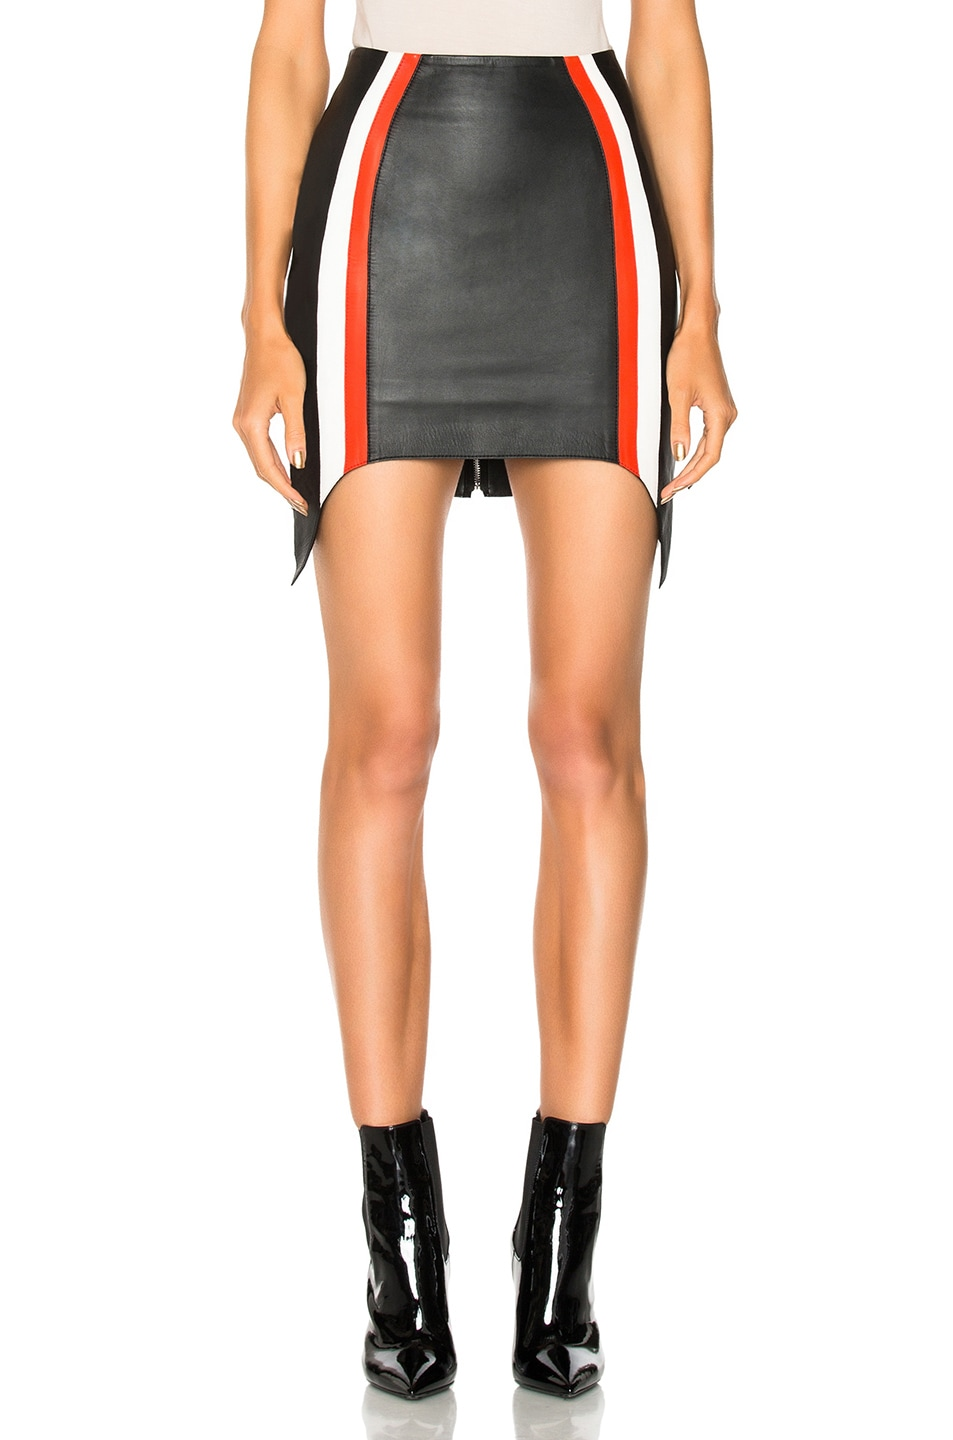 0c0306ad6b6297 Image of mugler soft nappa leather skirt in black emergency red off white  jpg 953x1440 Red